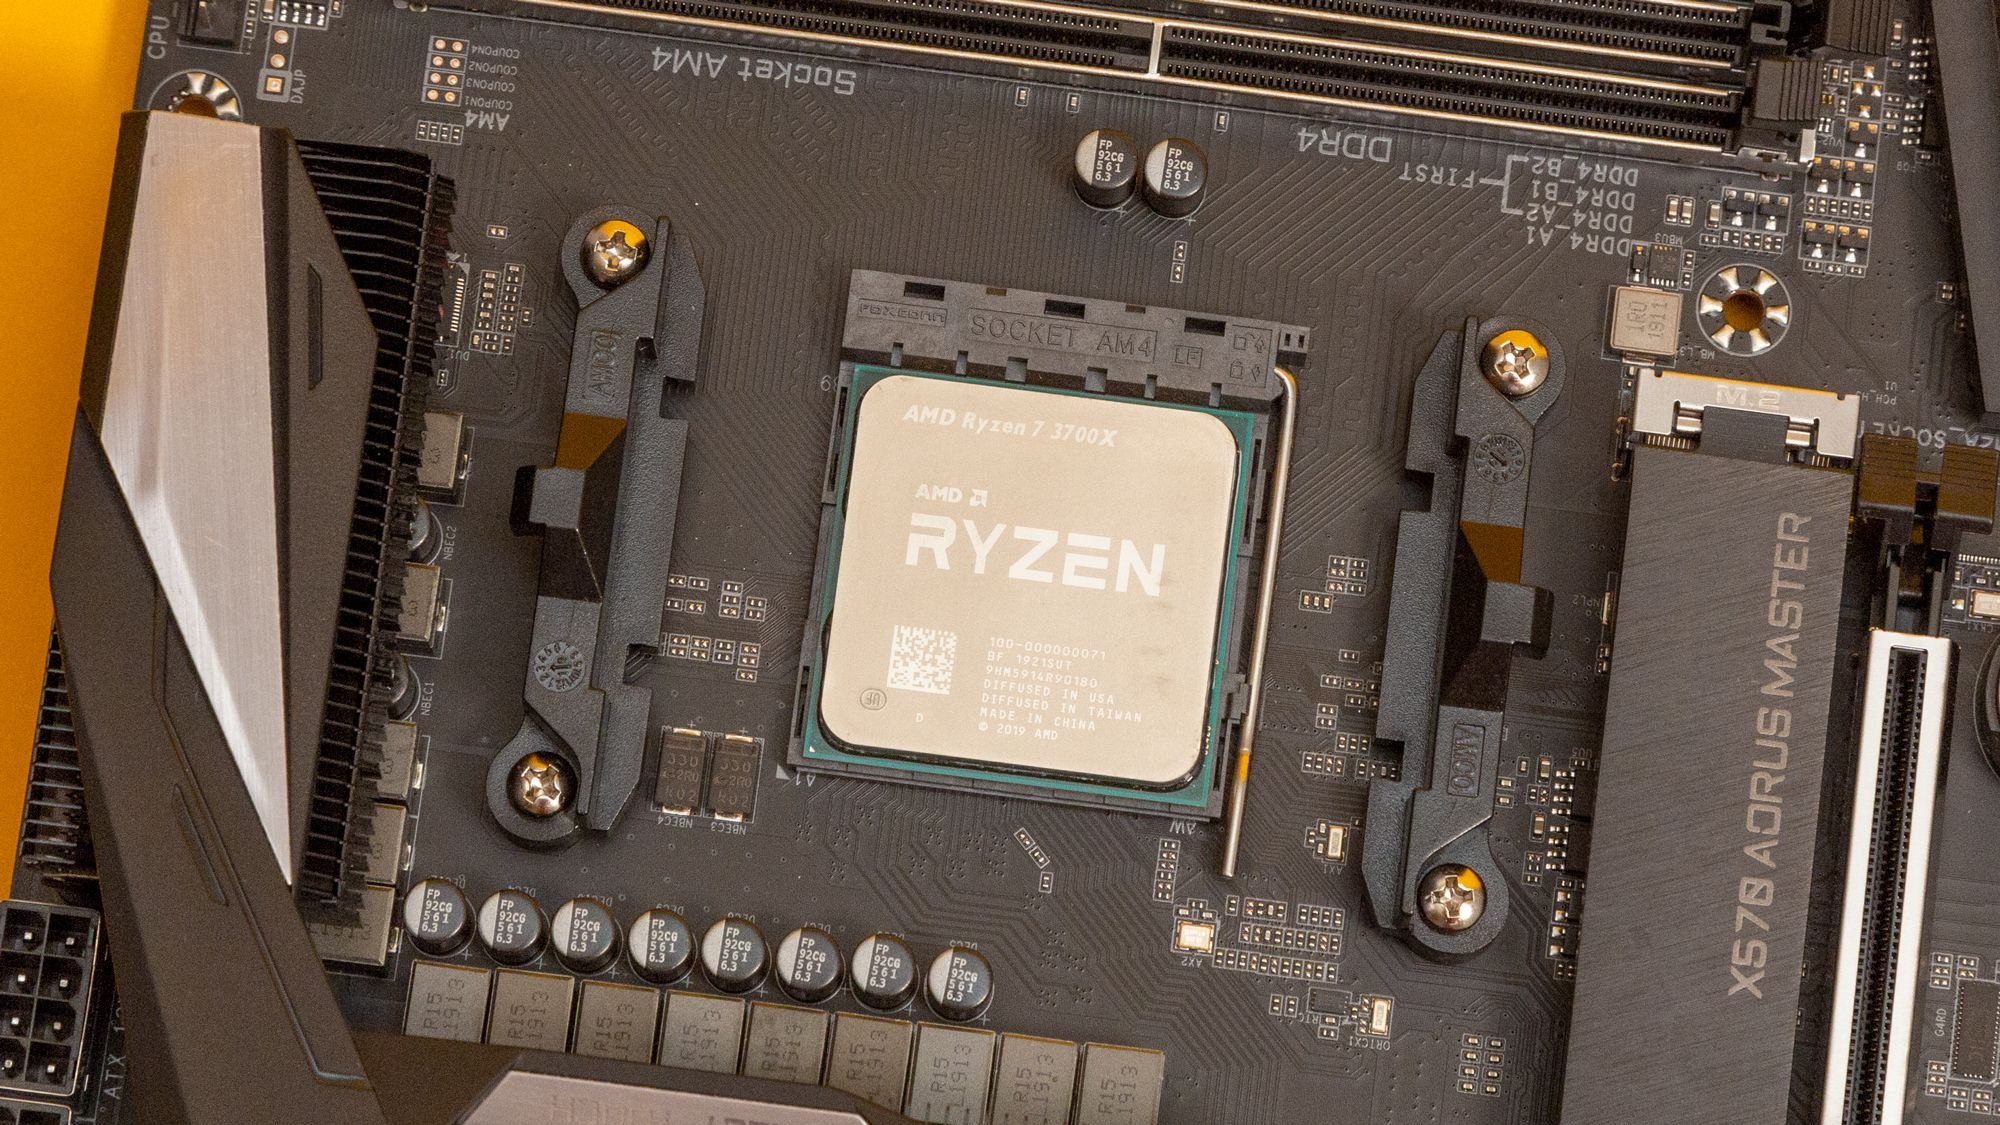 Best Cyber Monday Deals 2021 AMD's 5nm Zen 4 CPUs could arrive in 2021, really turning the heat